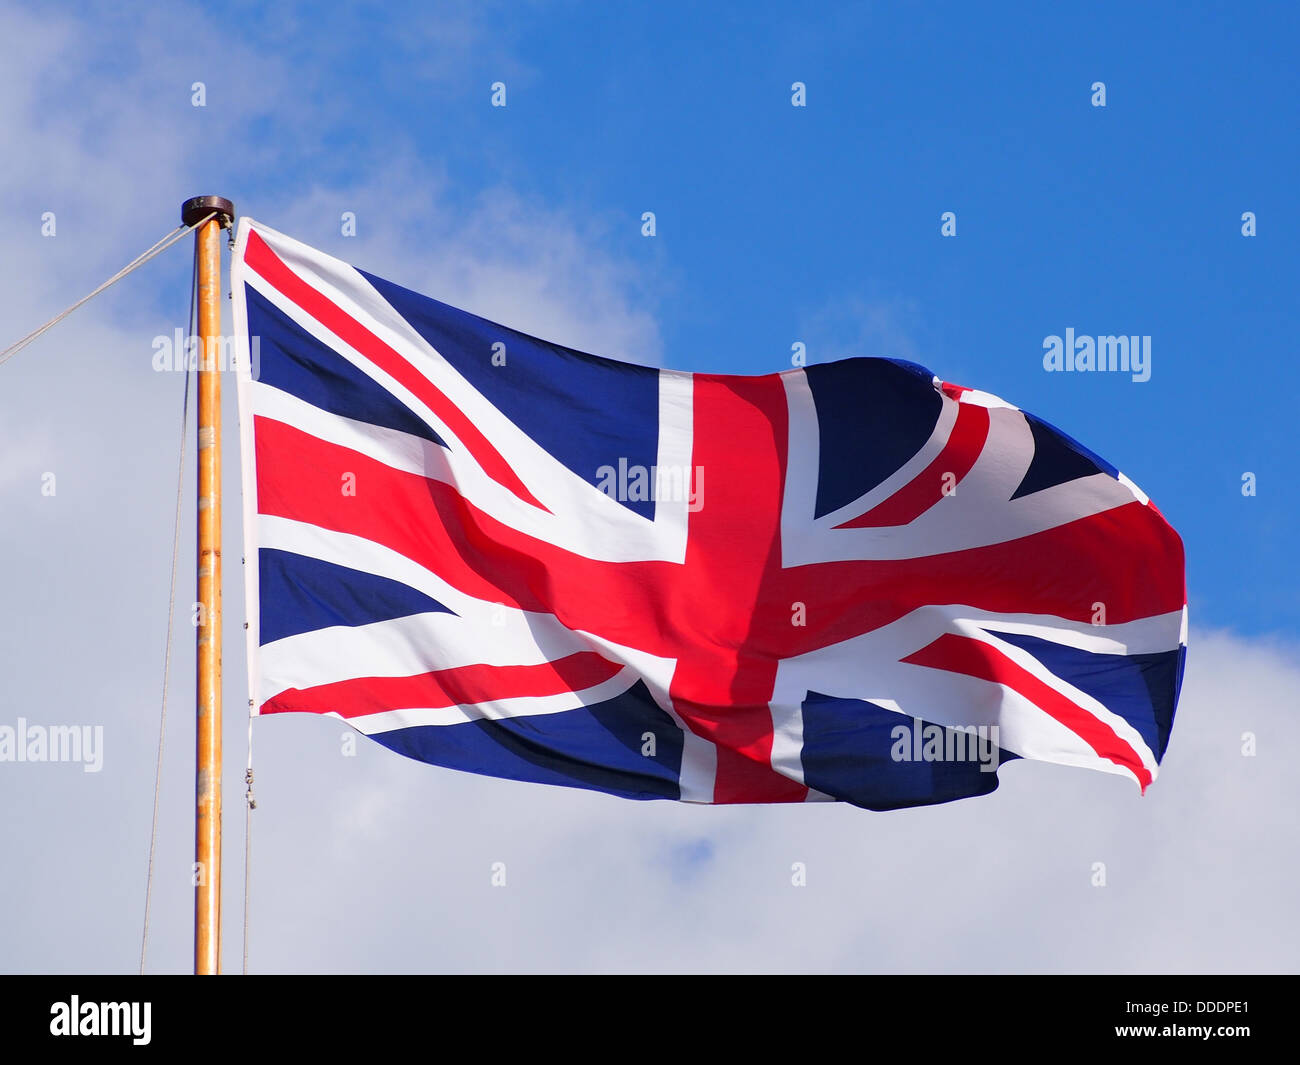 A Union Flag flying at the top of a flagpole against a partly cloudy blue sky - Stock Image